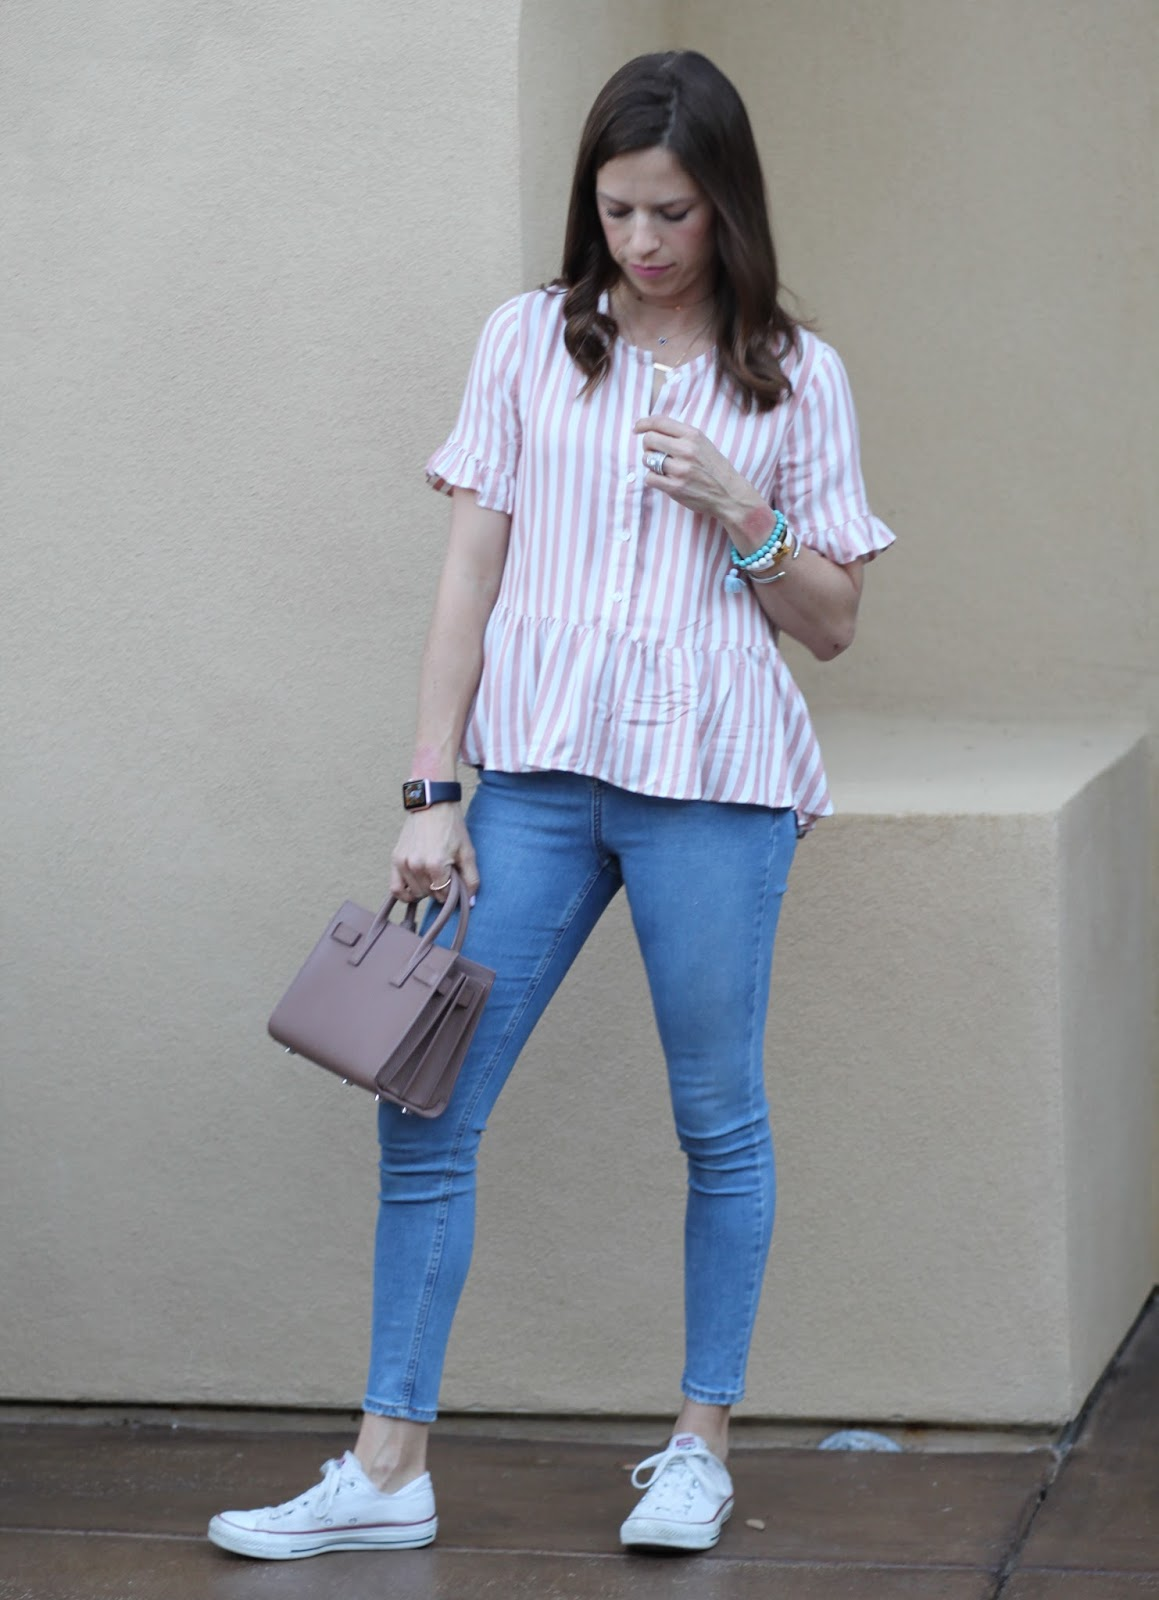 skinny jeans and converse outfit